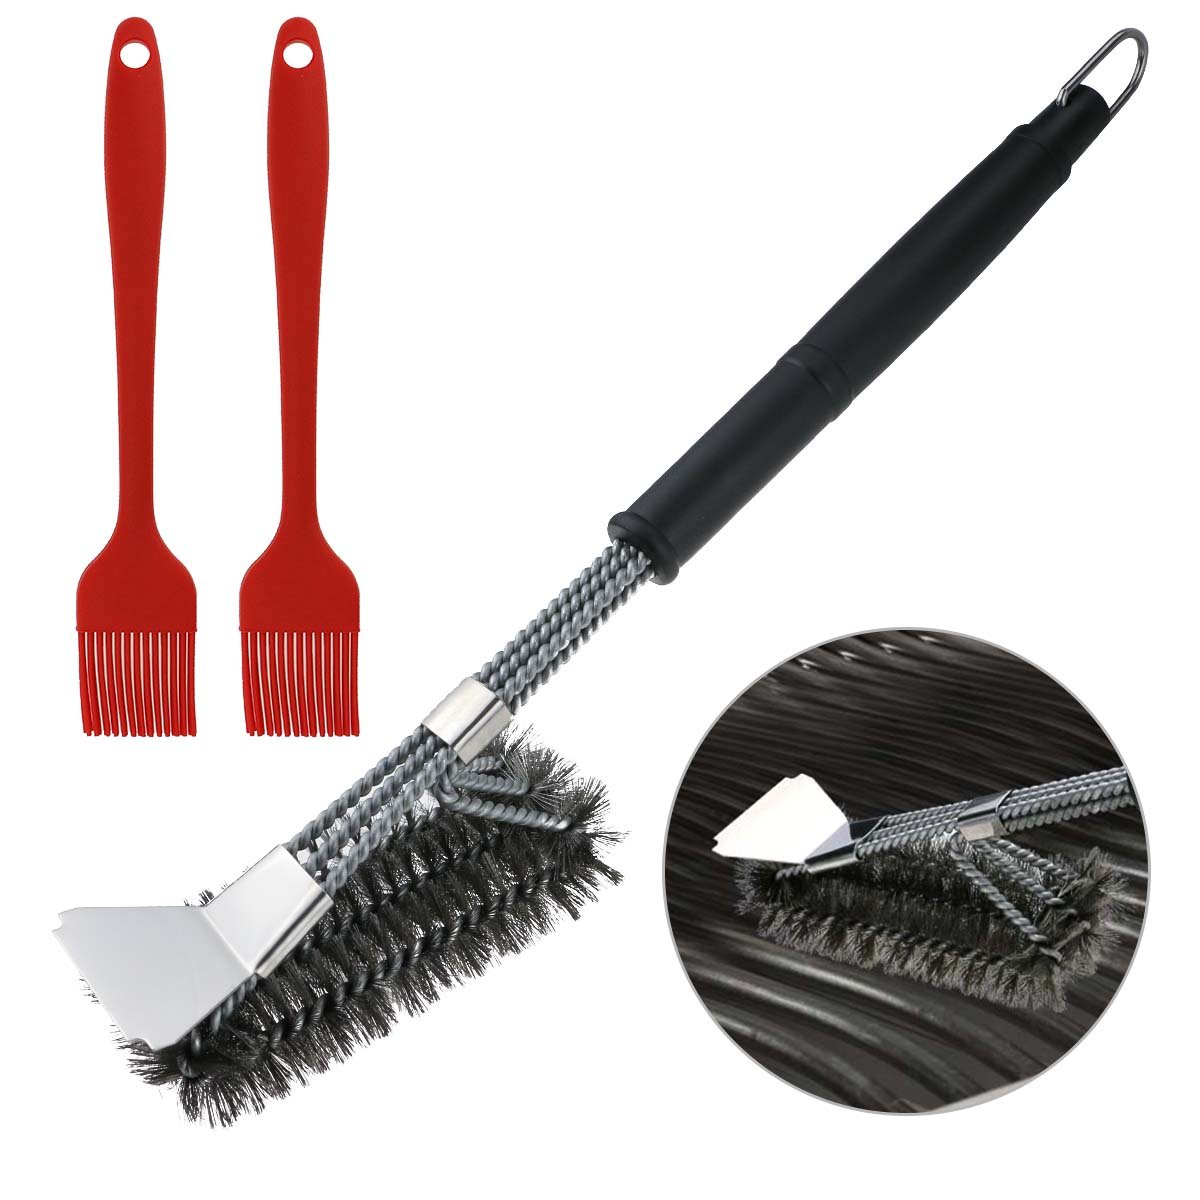 Fixget BBQ Grill Brush, 3 in 1 18